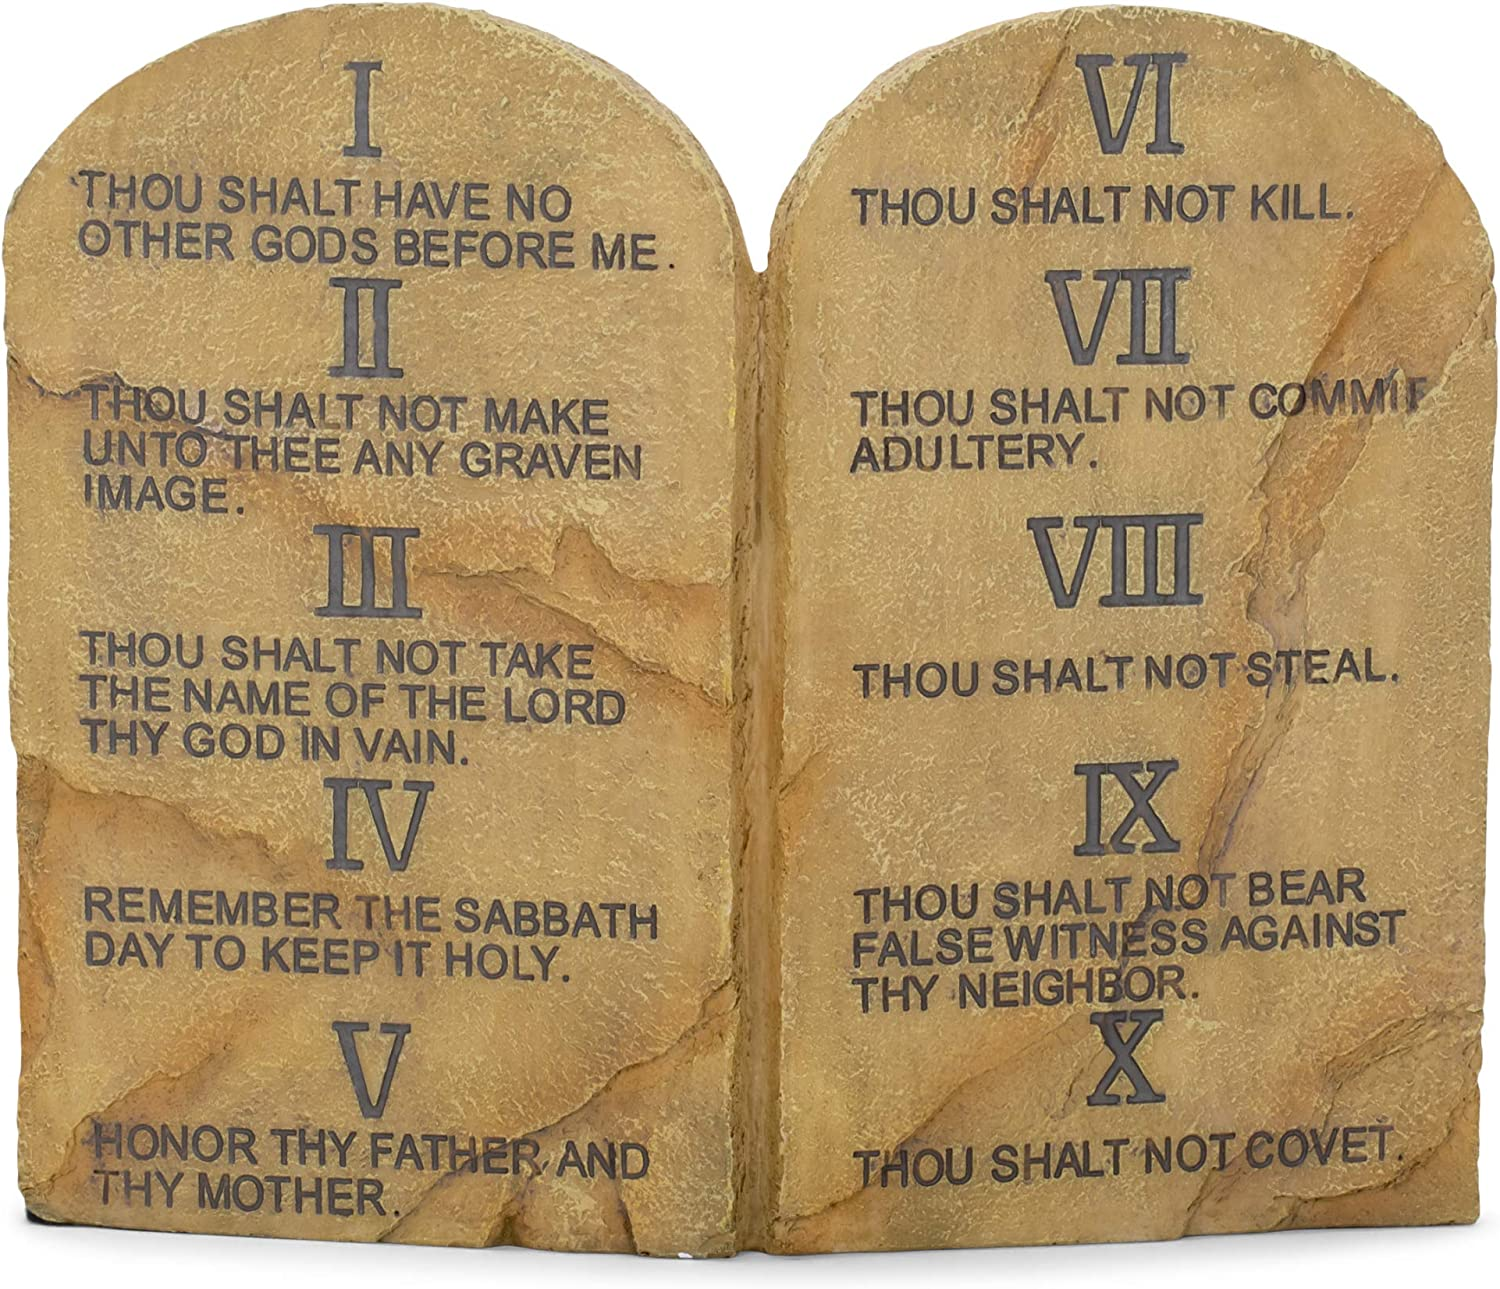 Amazon Com Dicksons Ten Commandments Resin Stone 11 X 9 Wall Or Tabletop Plaque Home Kitchen